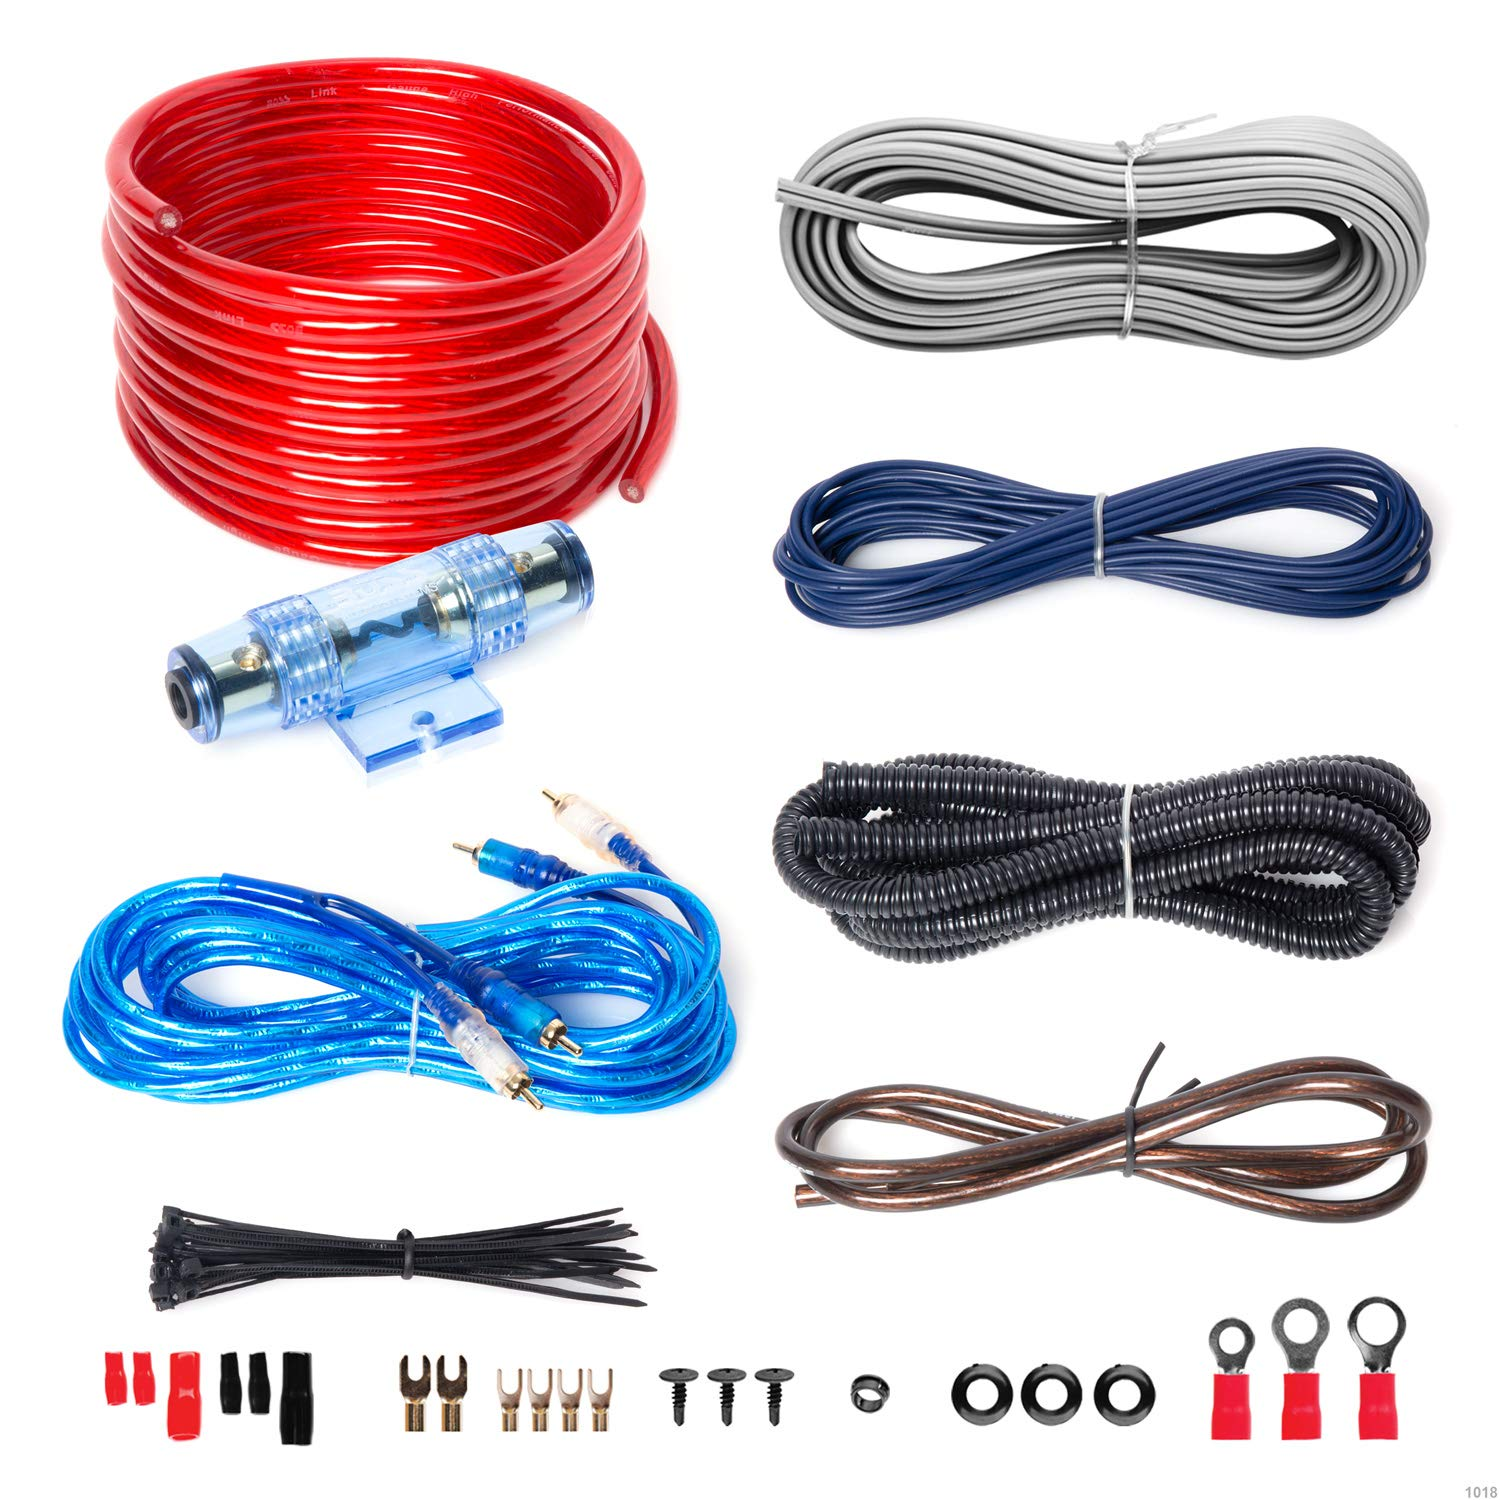 Excellent Boss Audio Kit2 8 Gauge Amplifier Installation Wiring Kit A Car Amplifier Wiring Kit Helps You Make Connections And Brings Power To Your Radio Dandim Mohammedshrine Wiring Diagrams Dandimmohammedshrineorg